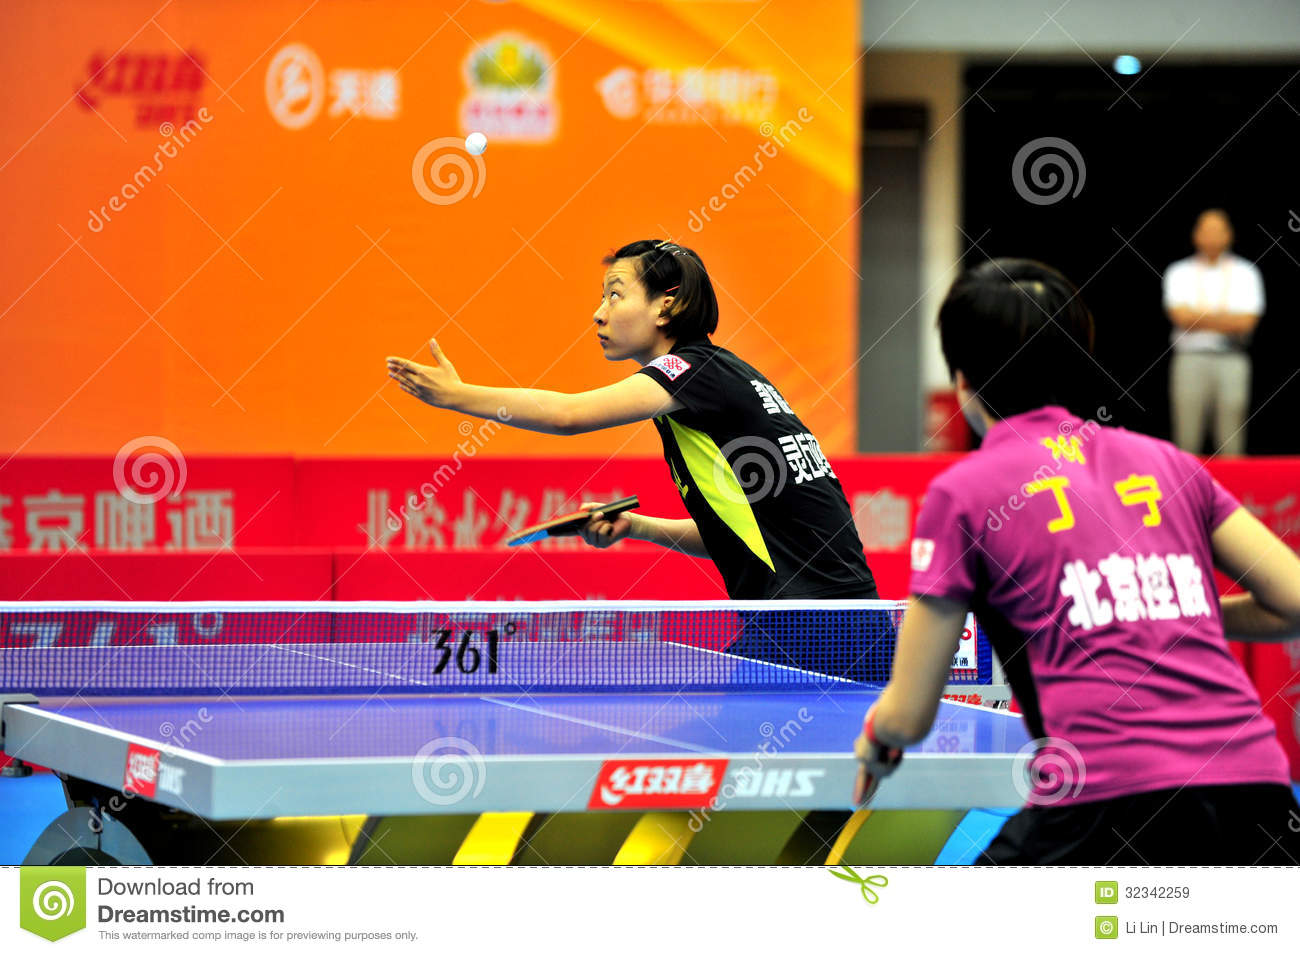 China Table Tennis Super League Editorial Stock Image